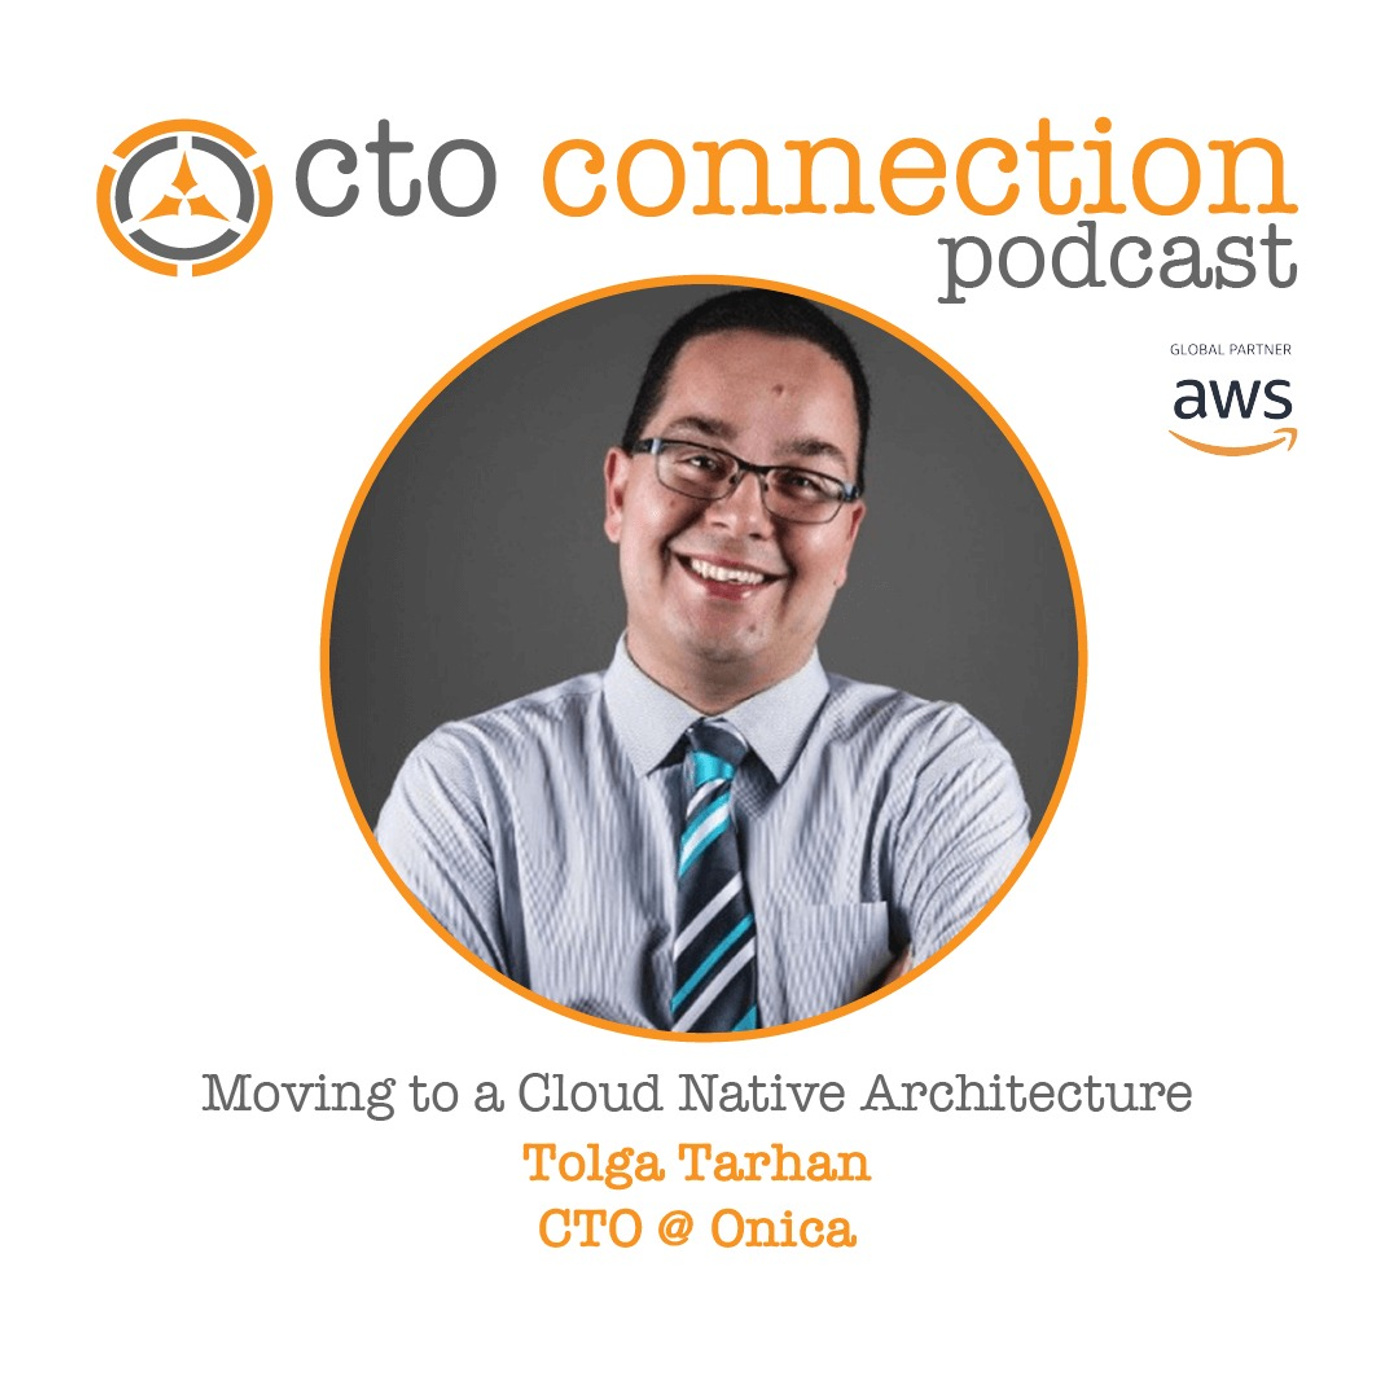 Moving to a Cloud Native Architecture with Tolga Tarhan